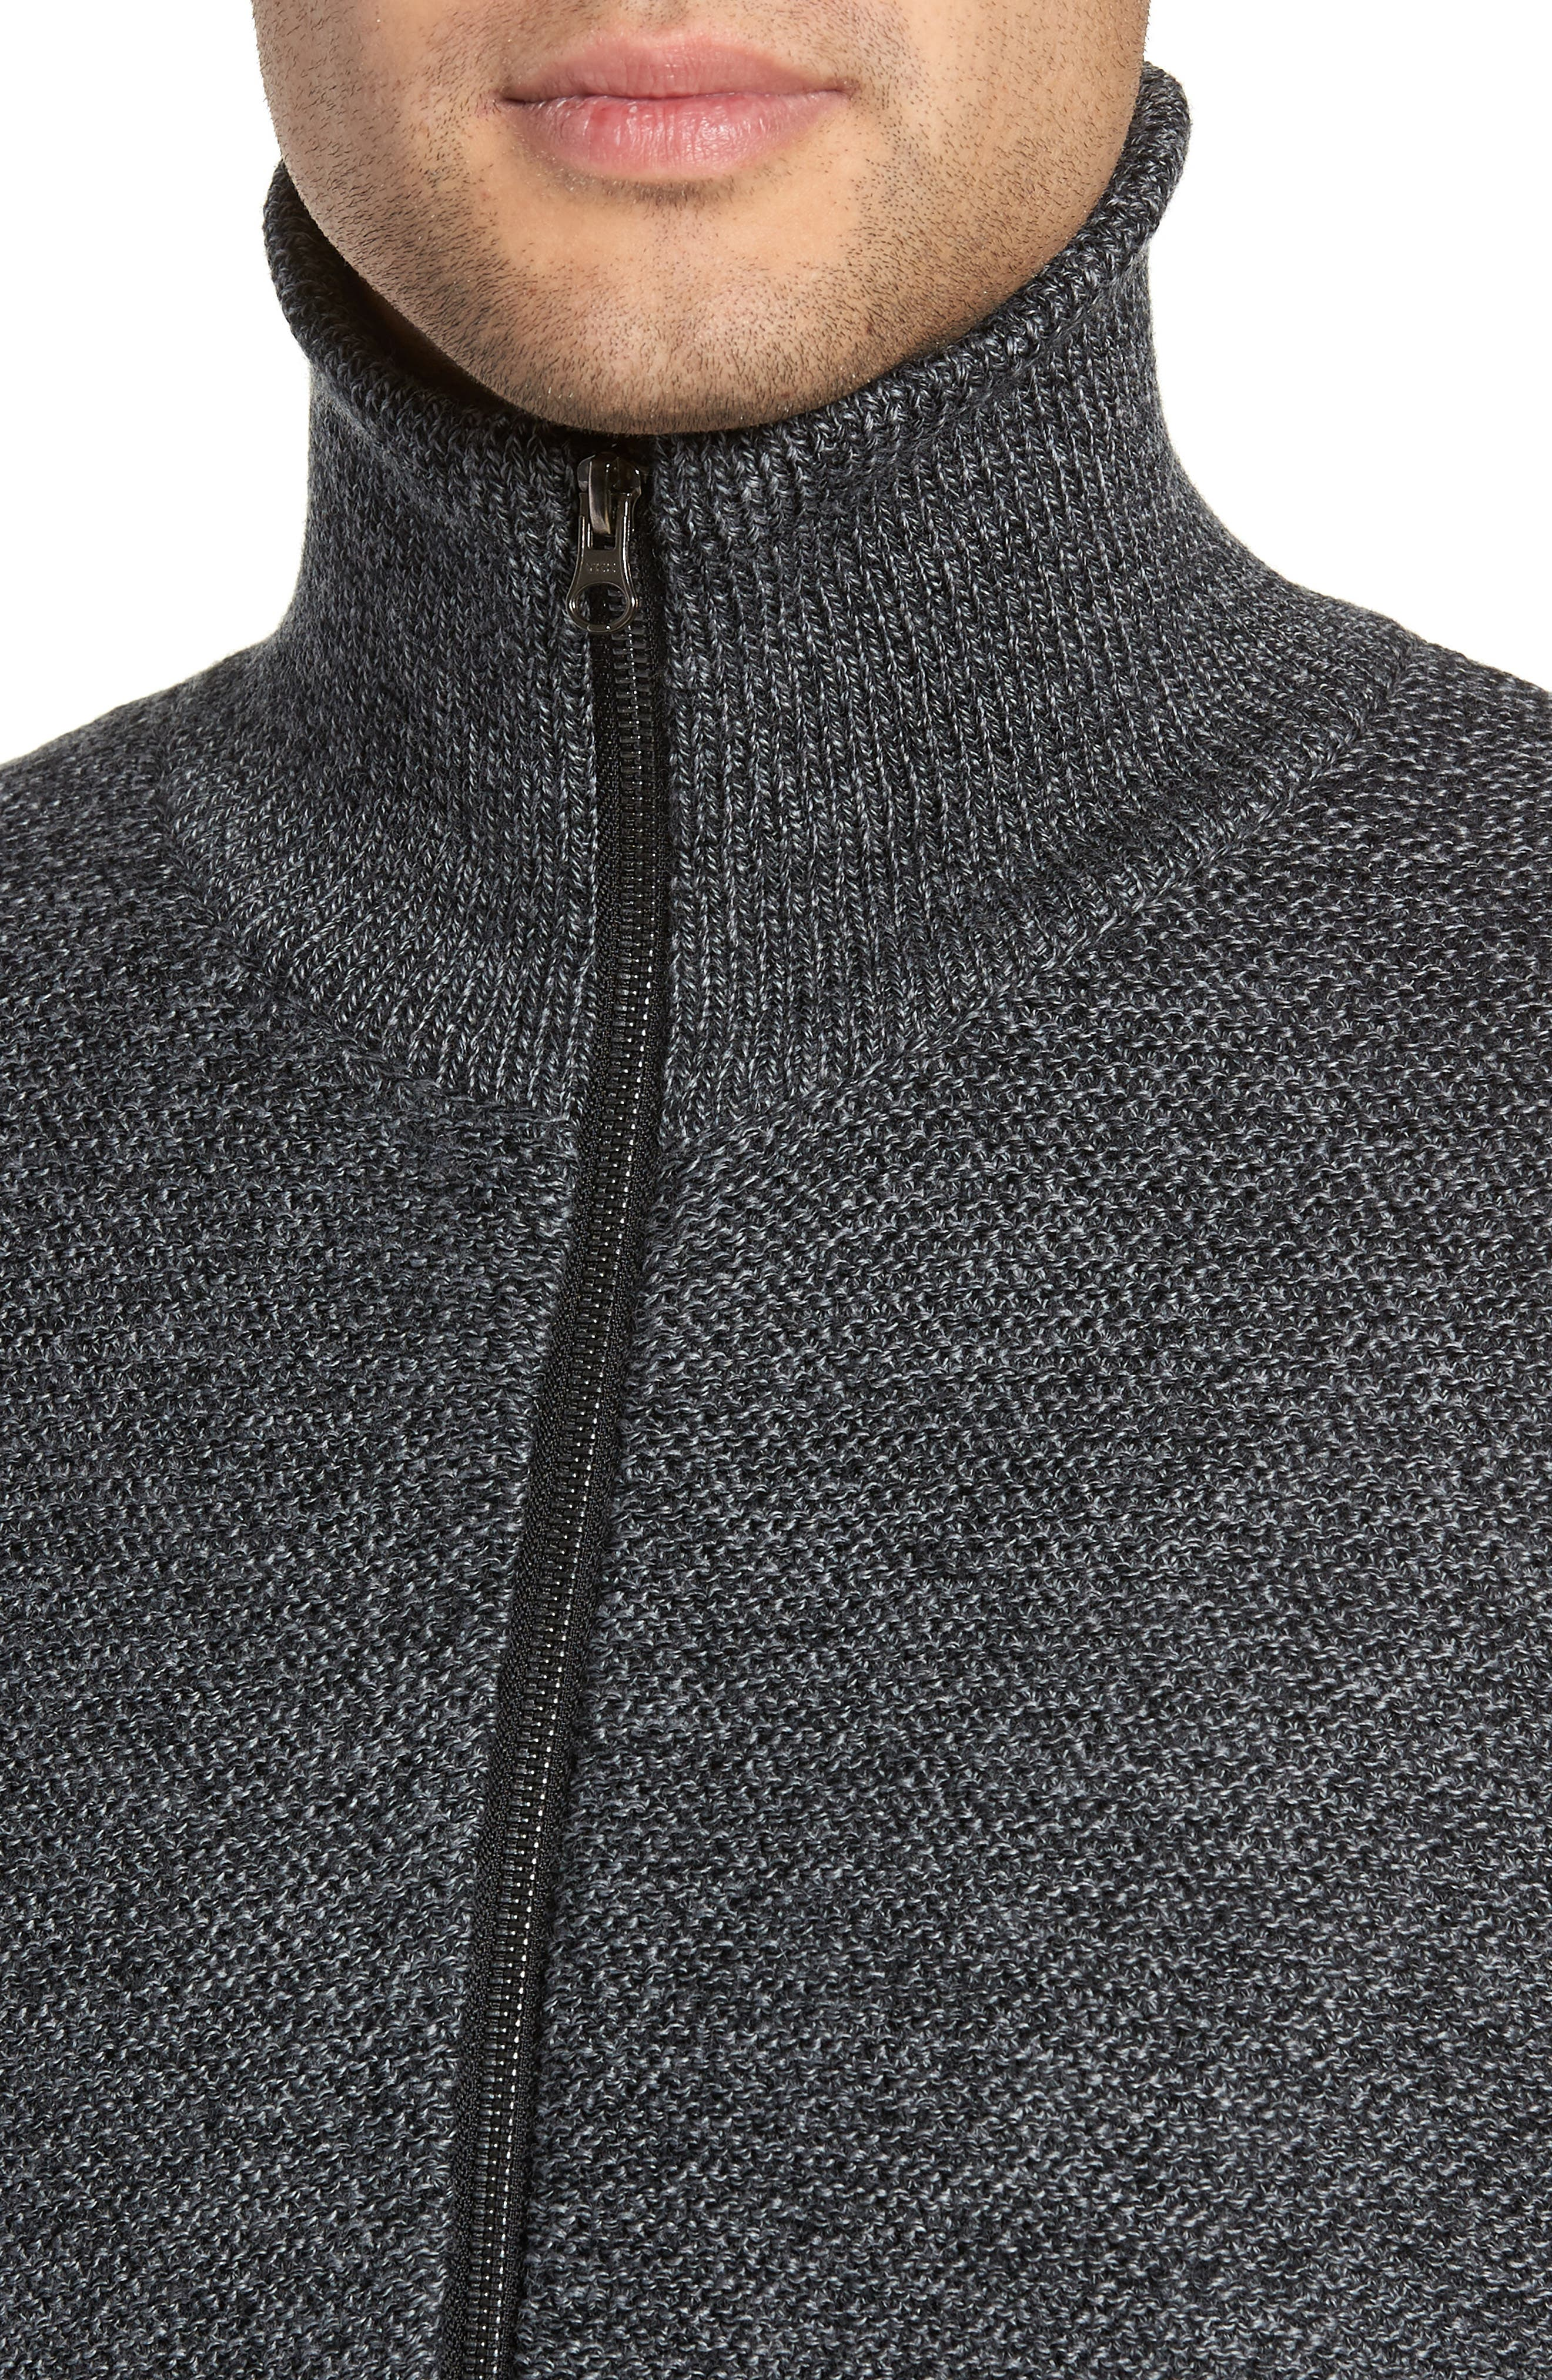 TWENTYMETRICTONS, Front Zip Wool Sweater, Alternate thumbnail 4, color, 015